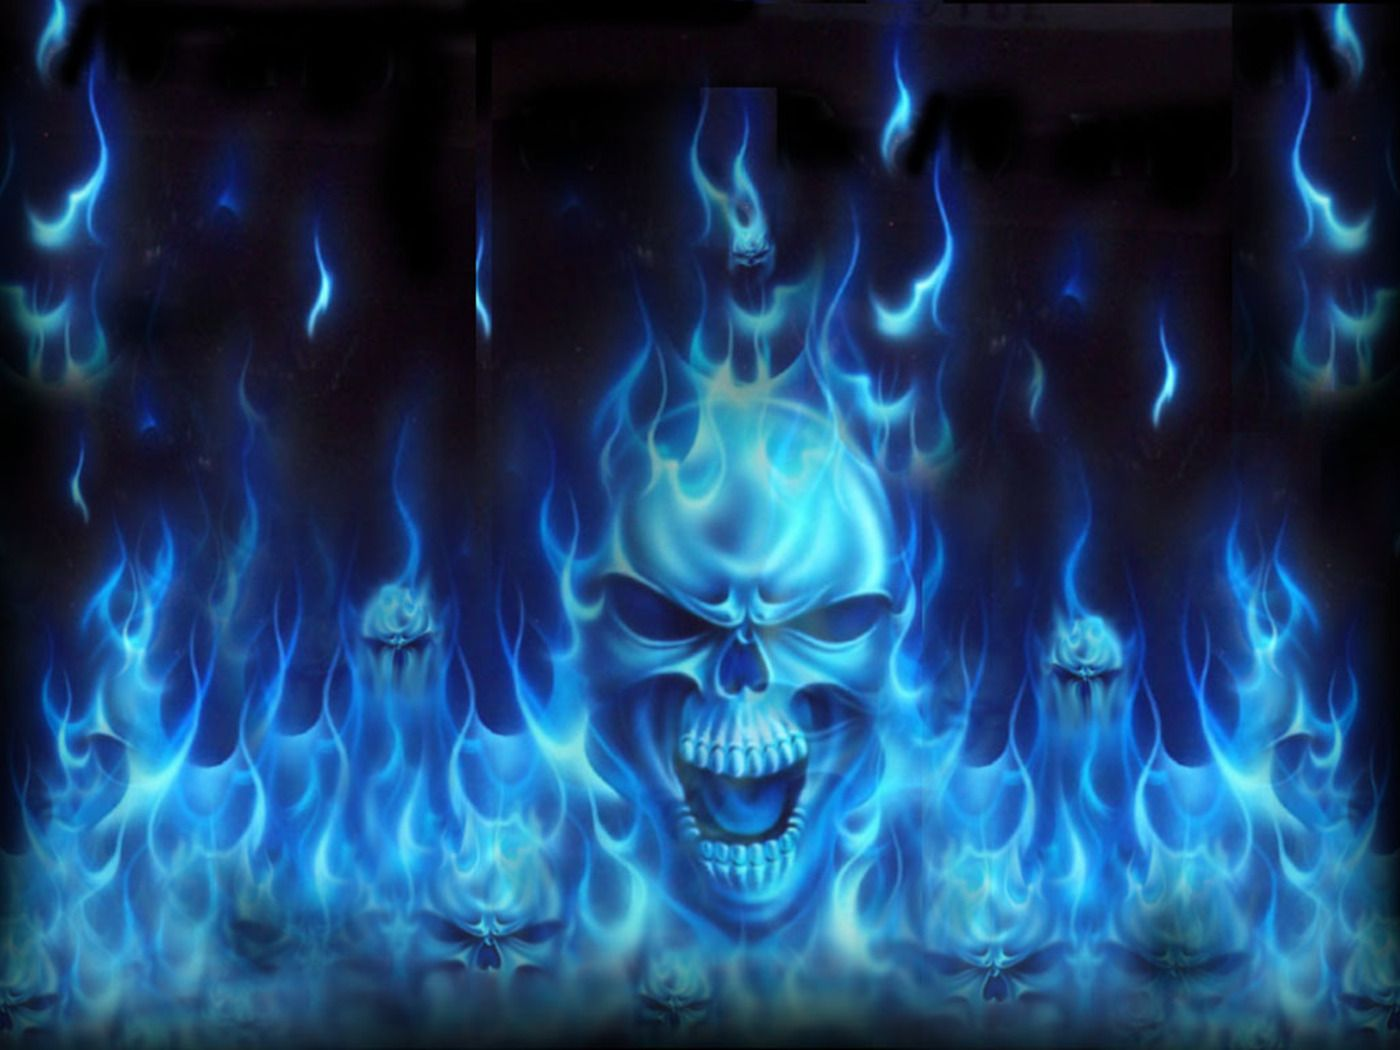 blue fire | blue fire skull wallpaper - uncategorized wallpapers